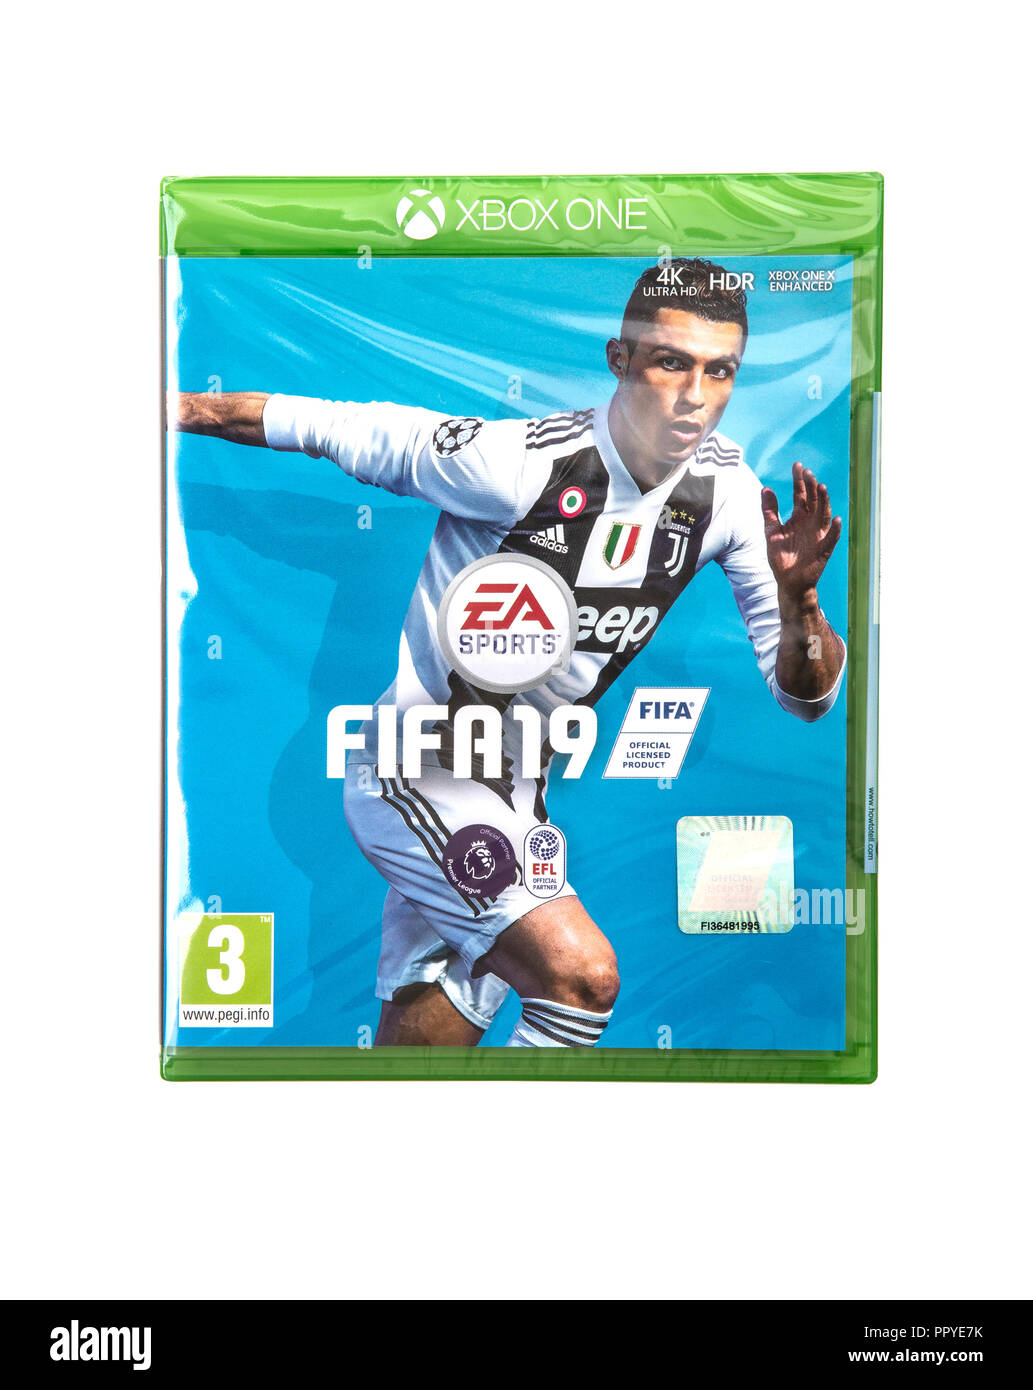 SWINDON, UK - SEPTEMBER 28, 2018: FIFA 2019 by EA Sports for the XBOX One console - Stock Image